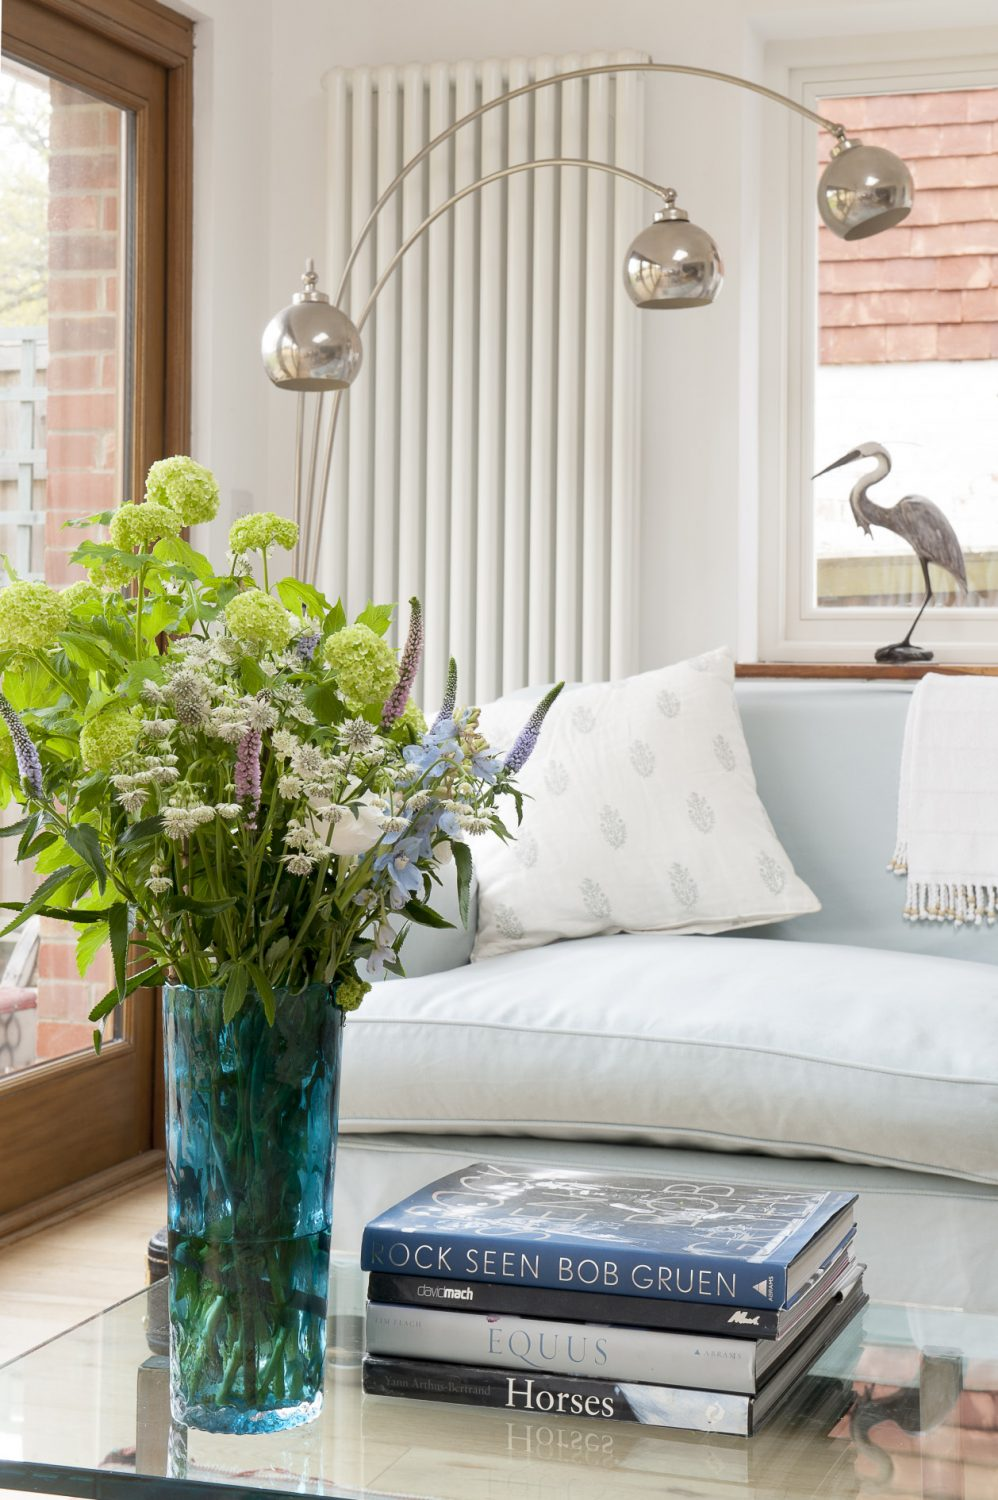 Retro lamps contrast with a vase of pretty cottage garden flowers and an elegant heron sculpture